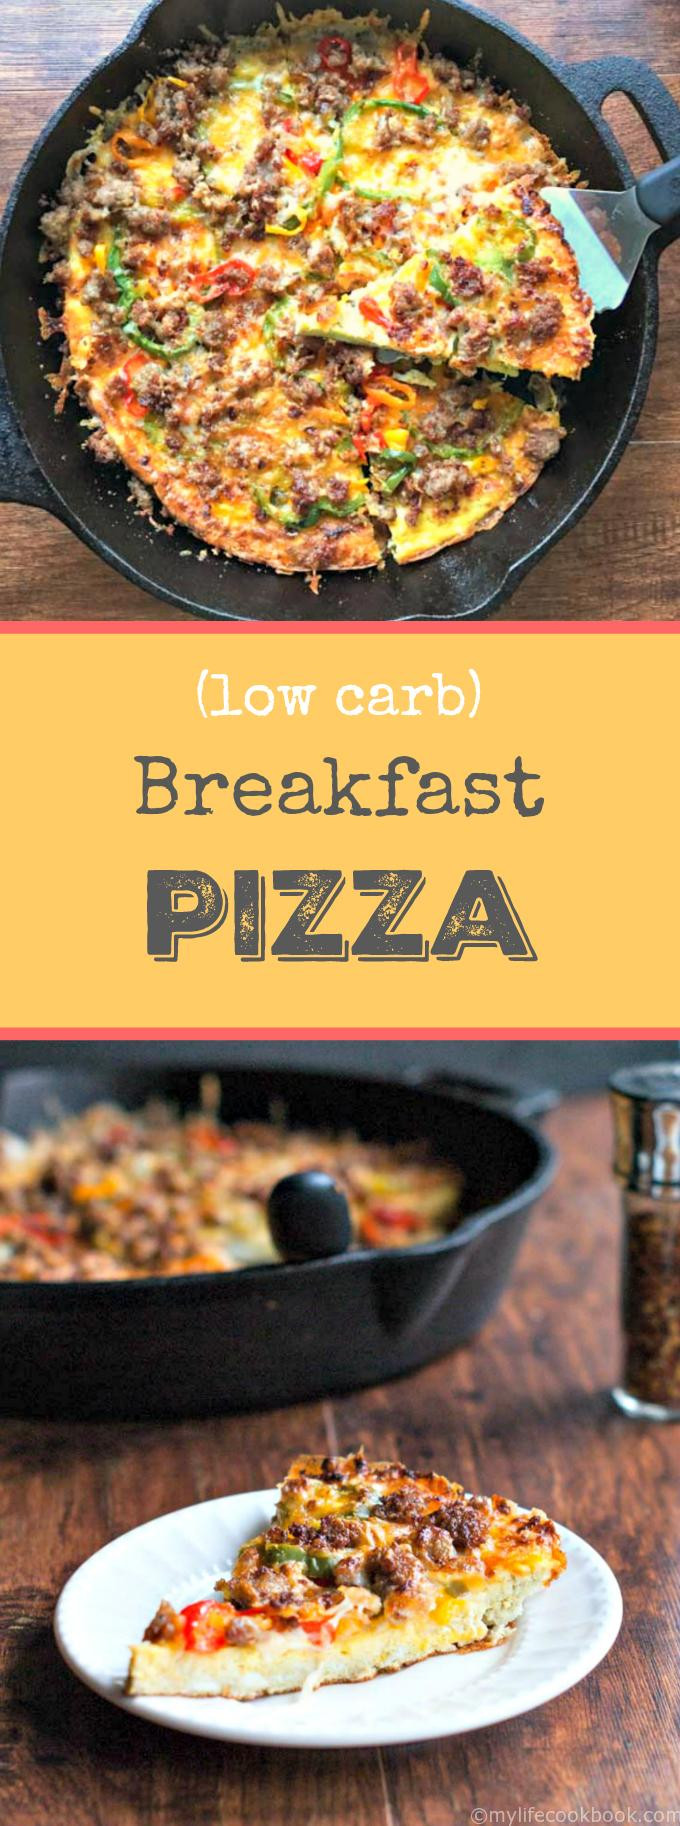 Healthy No Carb Breakfast  Low Carb Breakfast Pizza